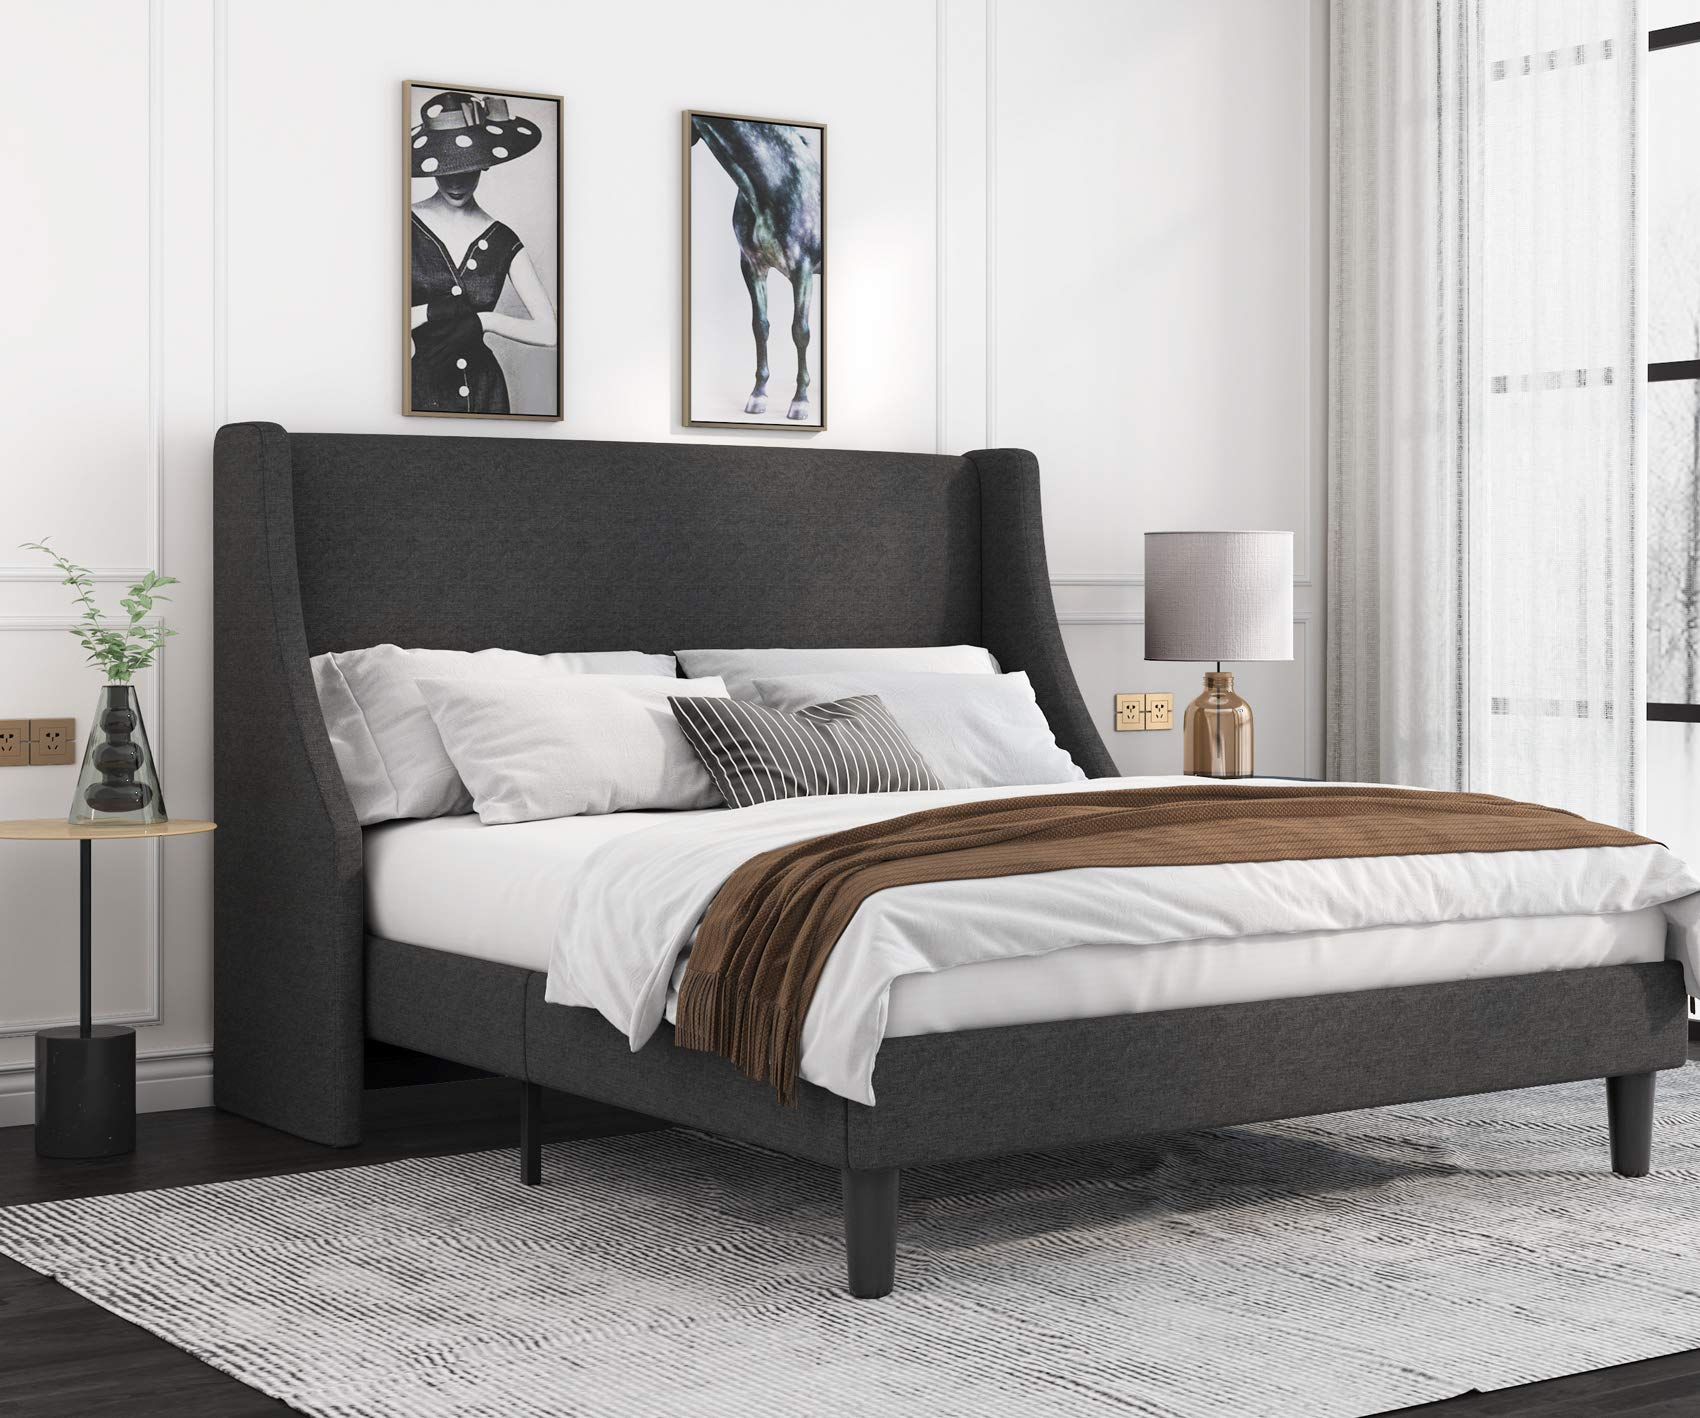 Allewie Modern Queen Size Modern Platform Bed Frame with Deluxe Wingback/ Upholstered Bed Frame with Headboard / Wood Slat...